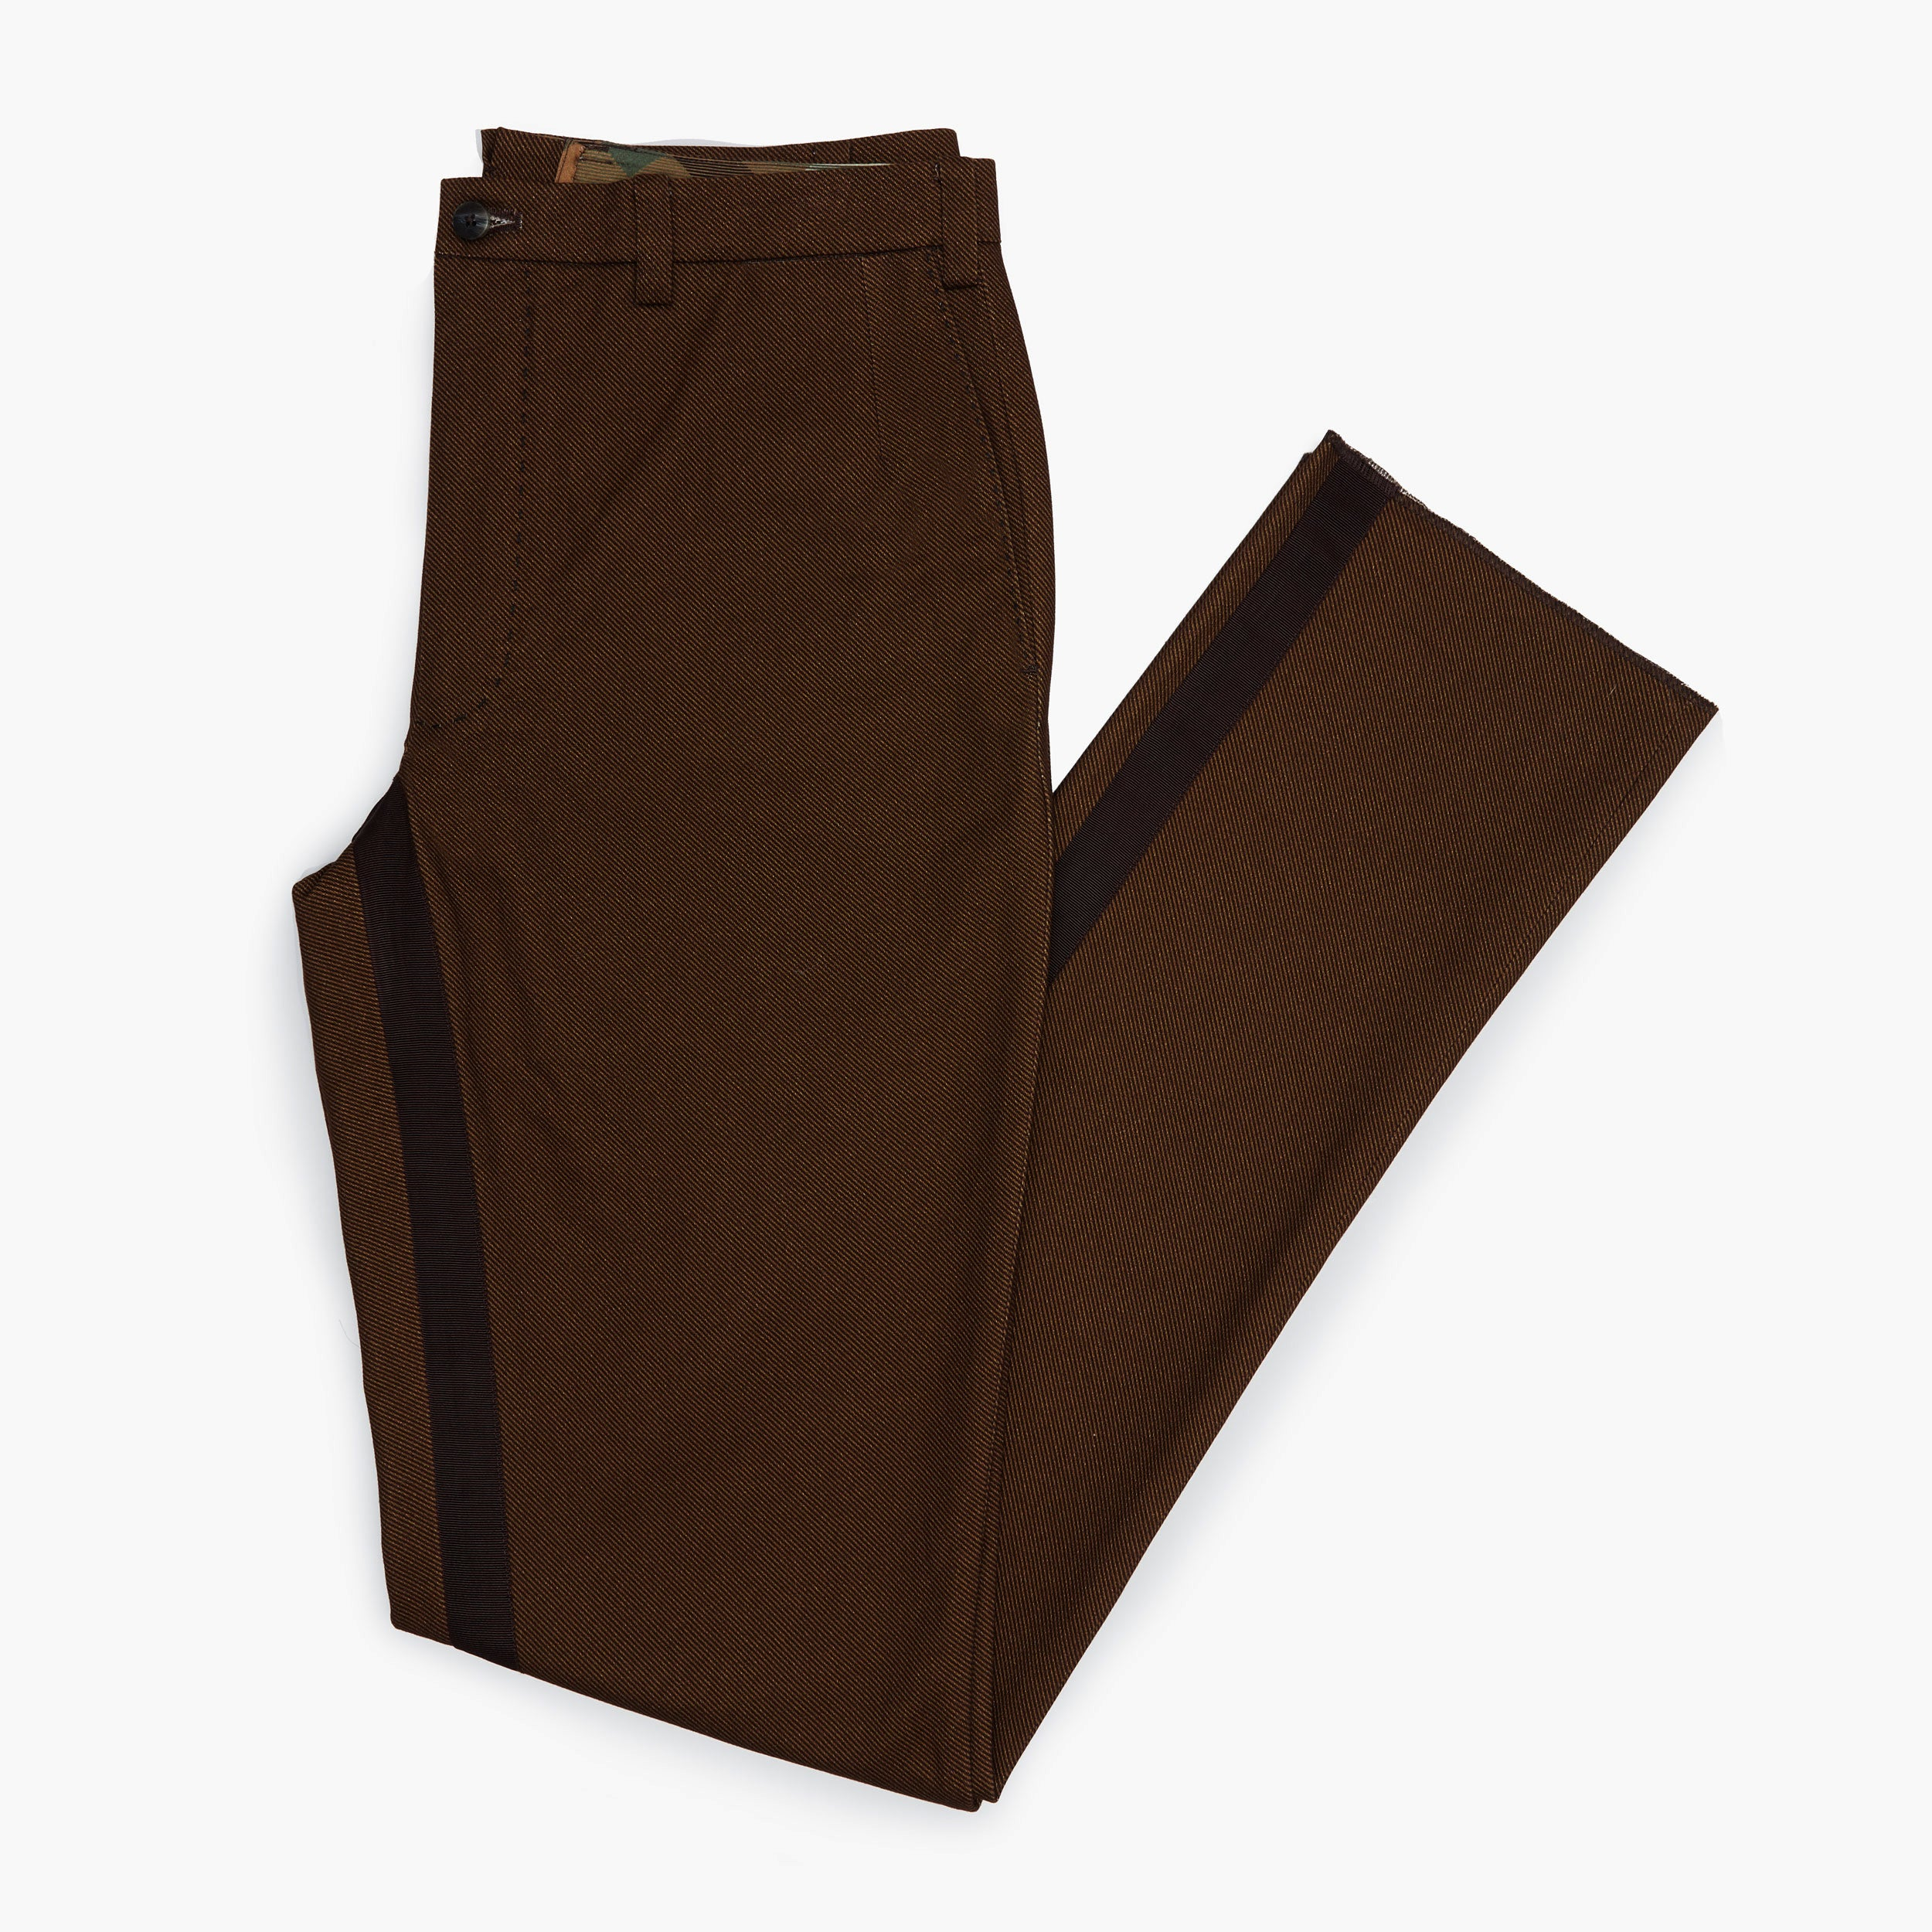 The Brown Tweed Twill Trouser